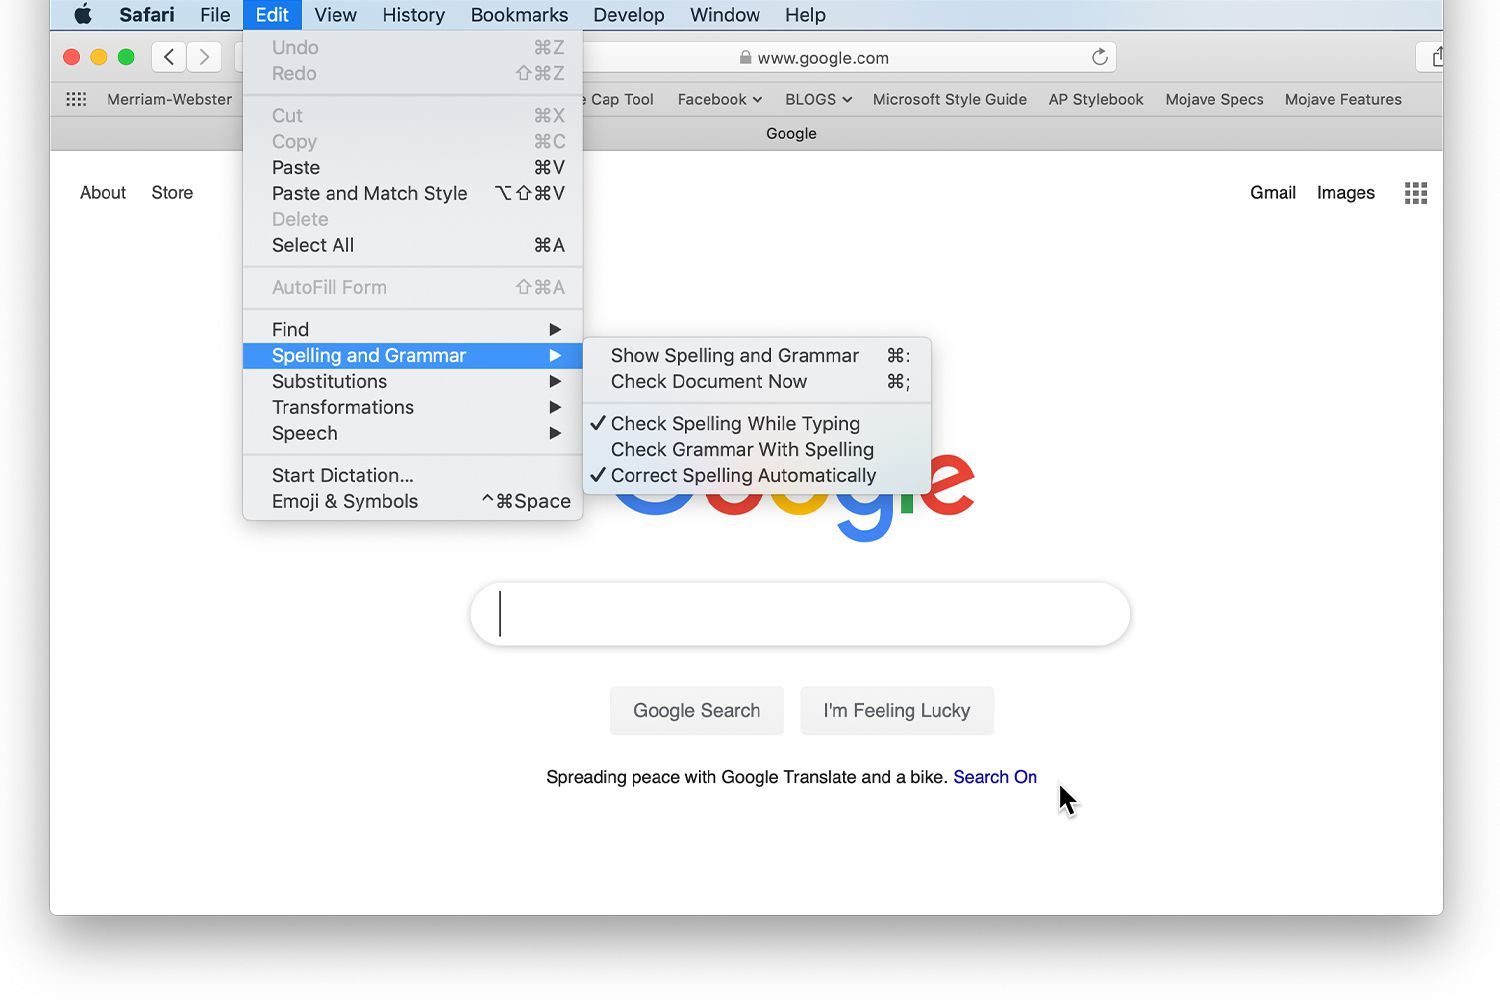 How to Use Spell Check for Yahoo Mail